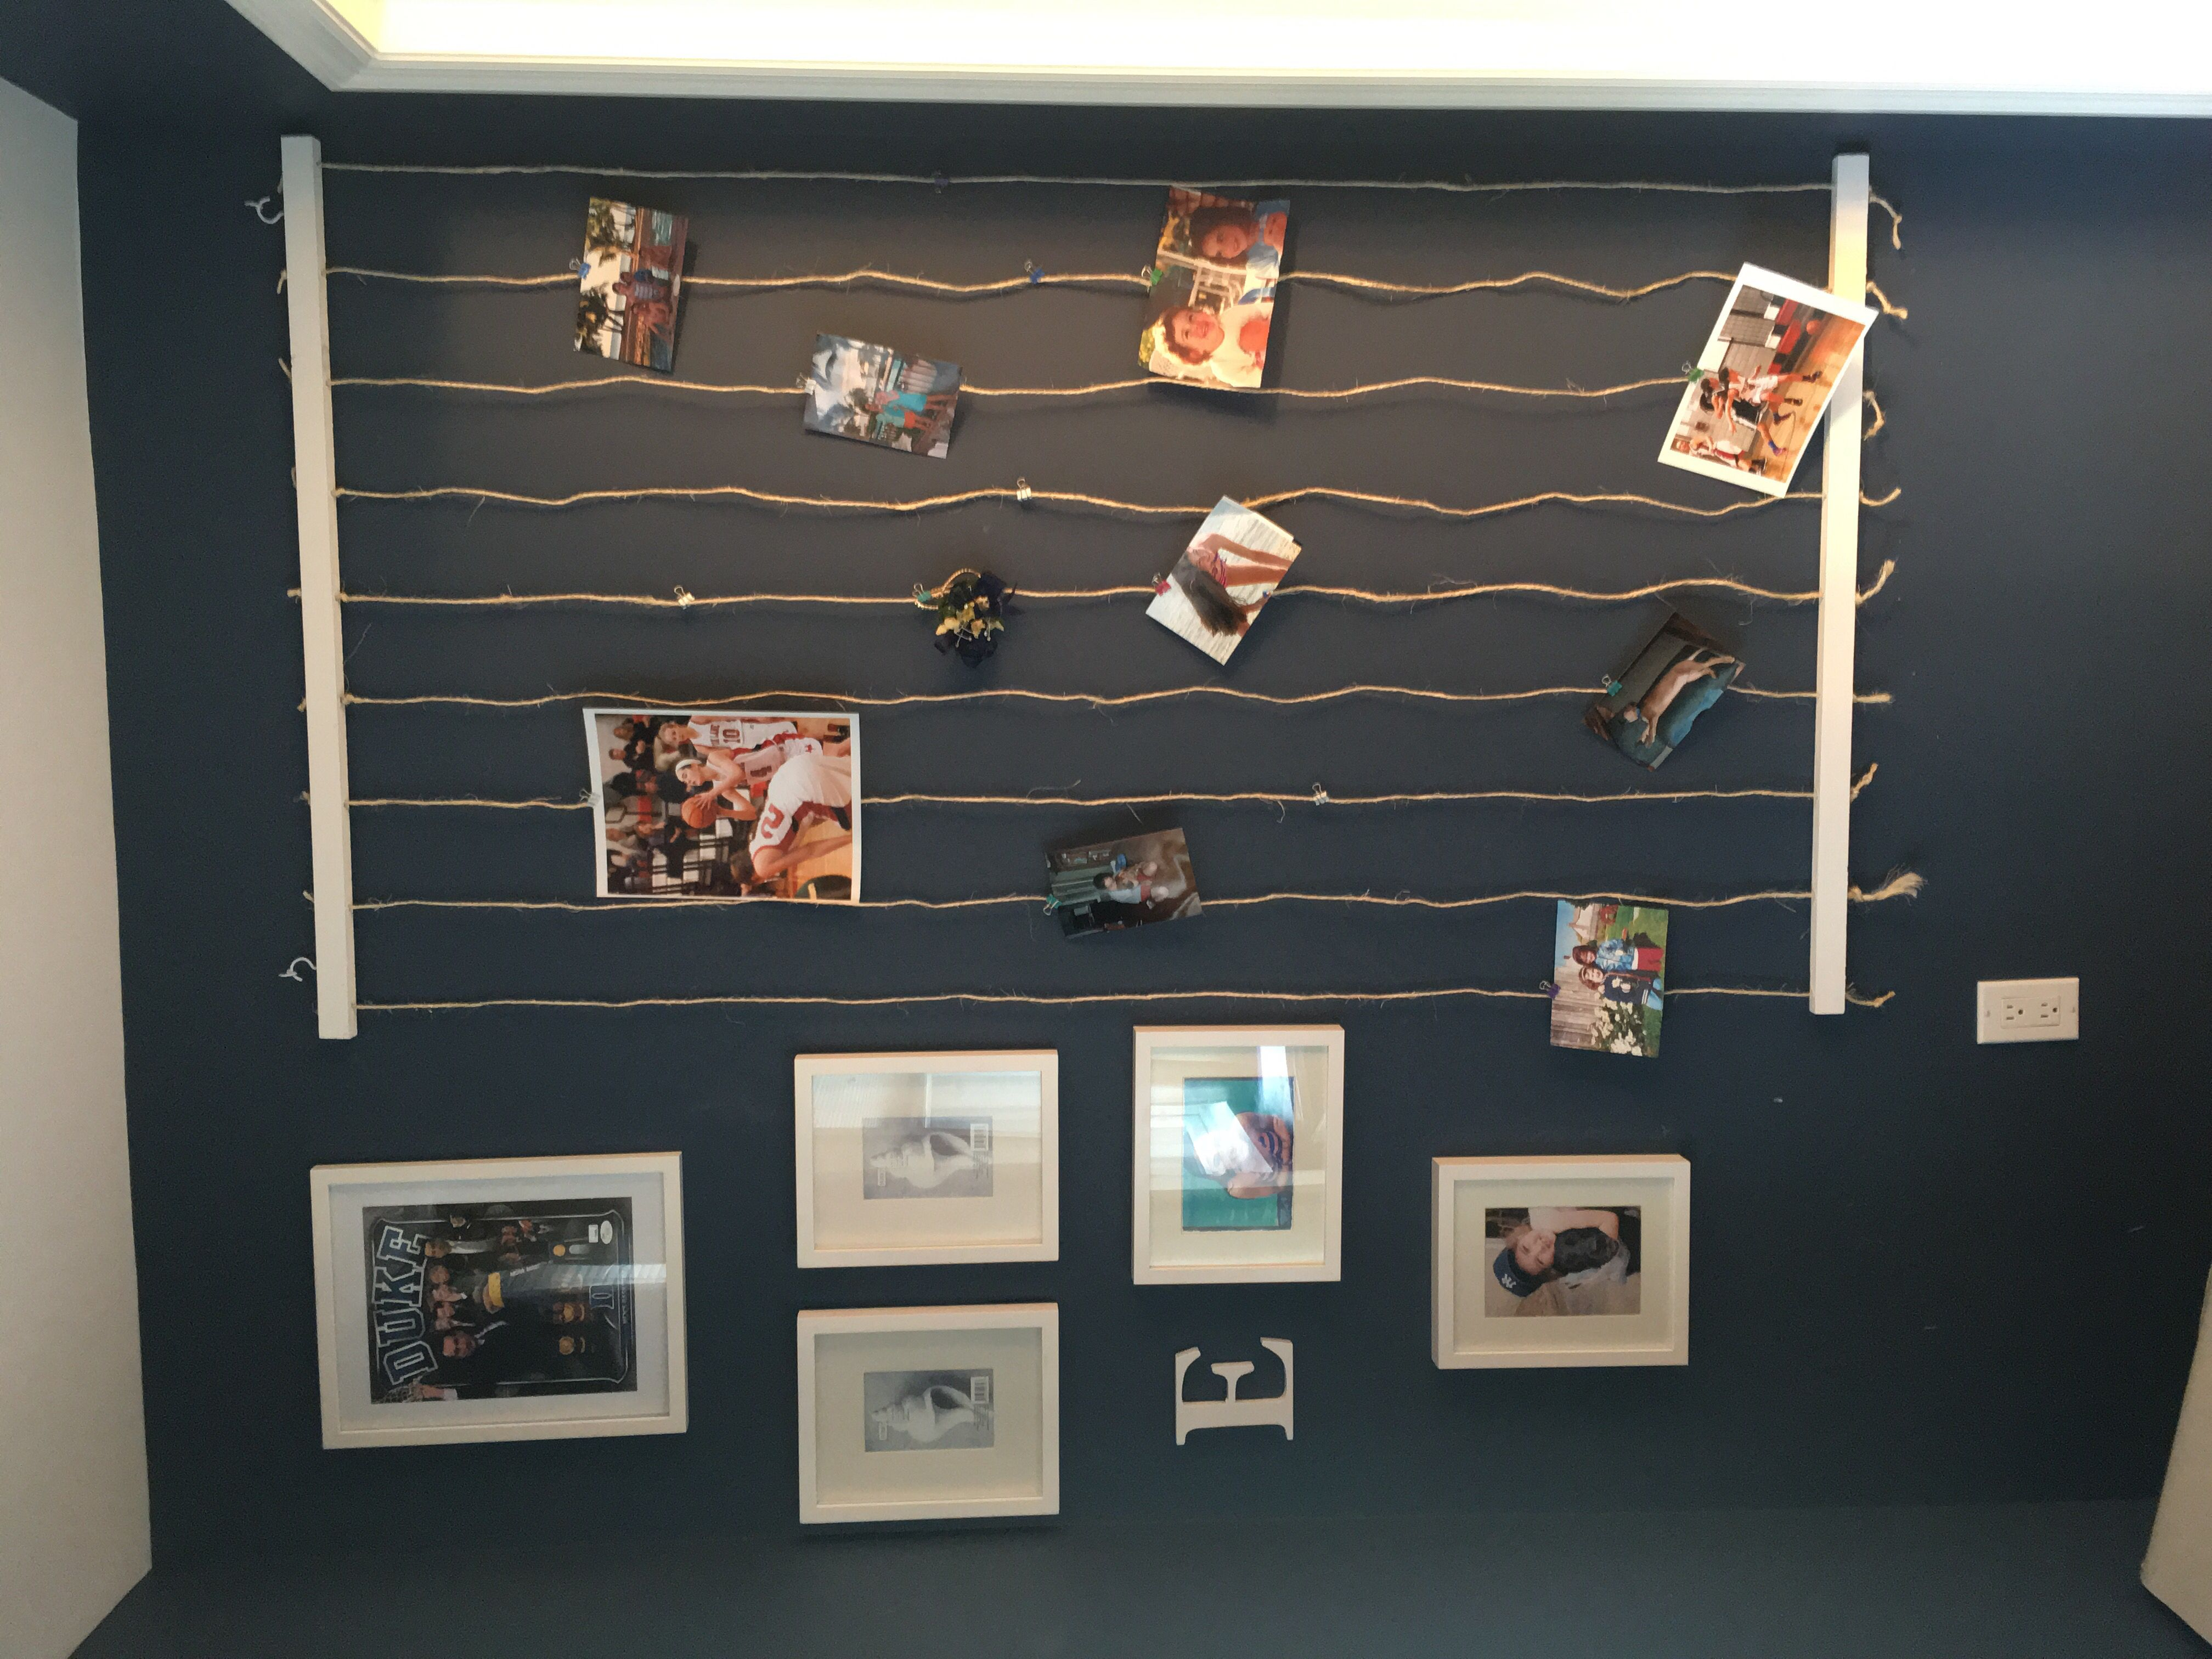 Diy Wood And Twine Photo Display Hang On Wall To Clip Photos To The Rope Easily With Paper Clips And Mini Binde Photo Wall Decor Hanging Wall Decor Diy Crafts